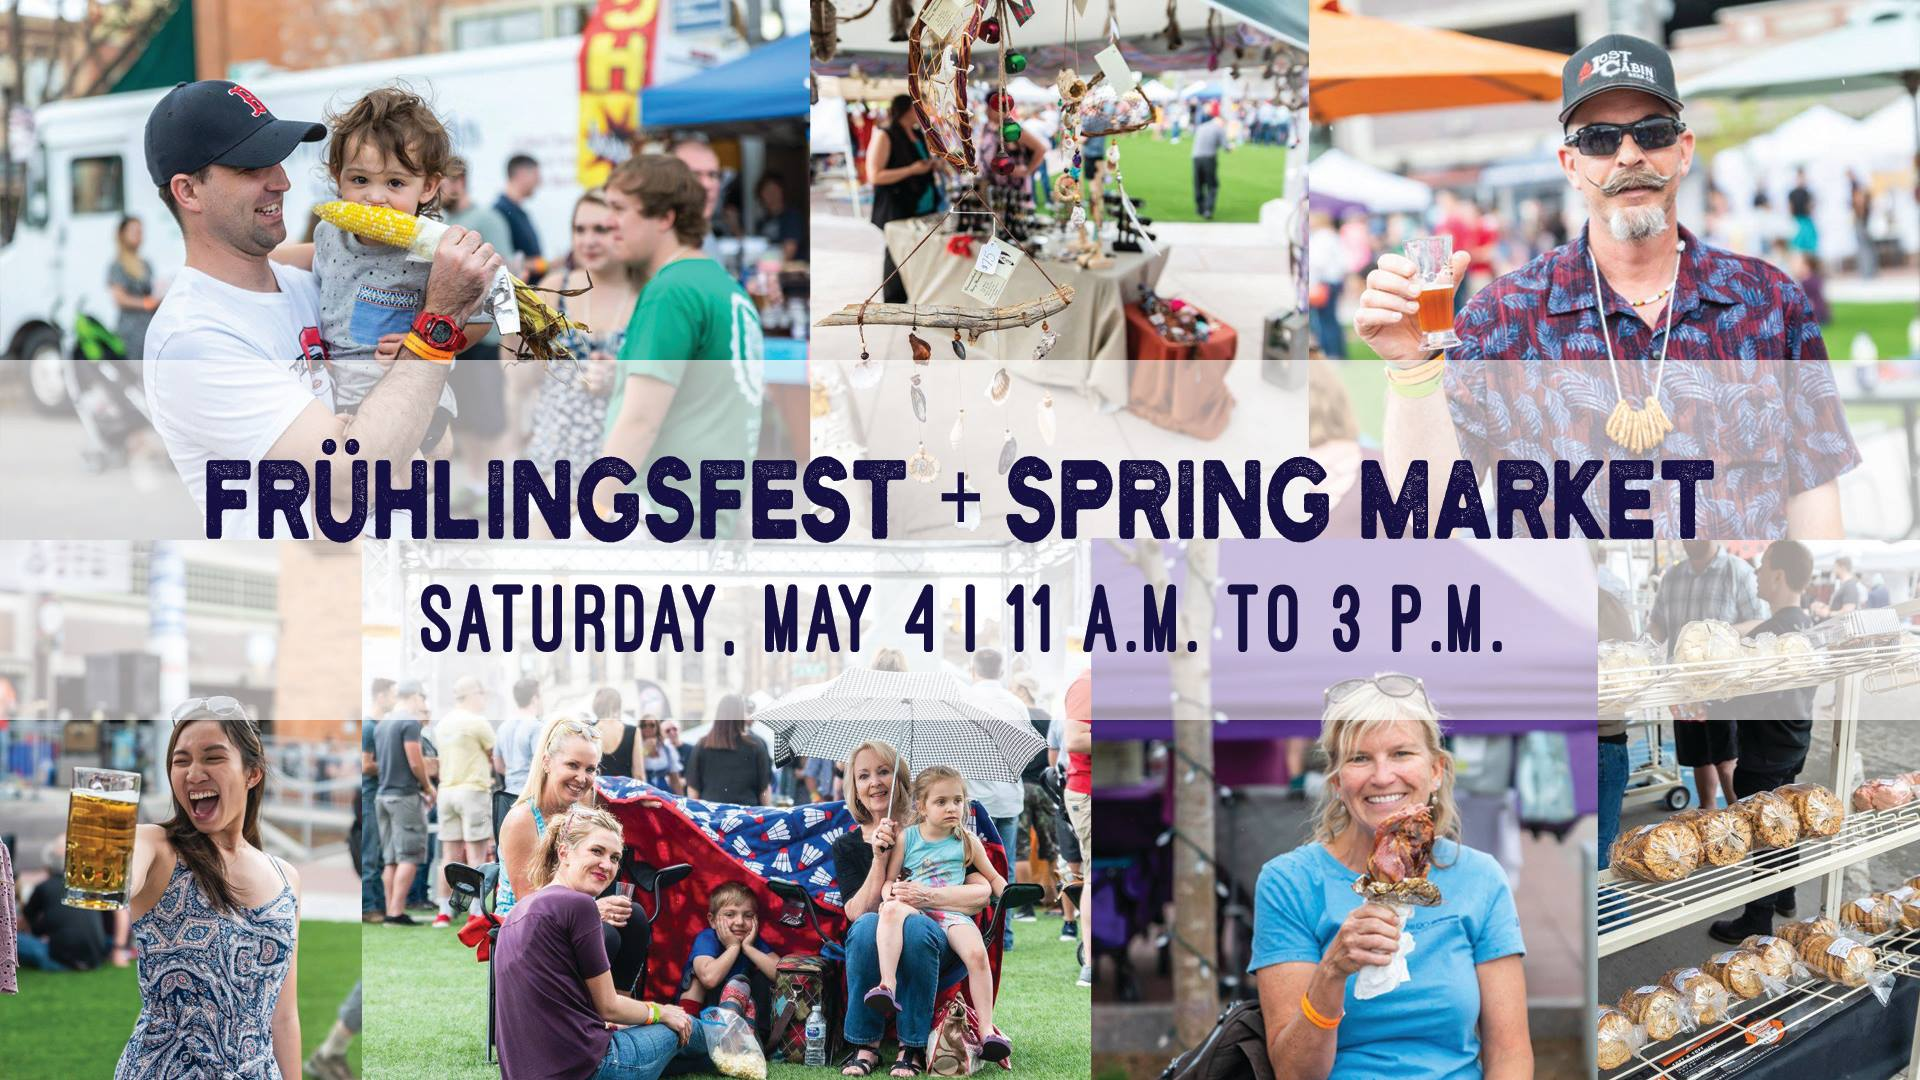 Frühlingsfest & Spring Market at Main Street Square in Rapid City, SD